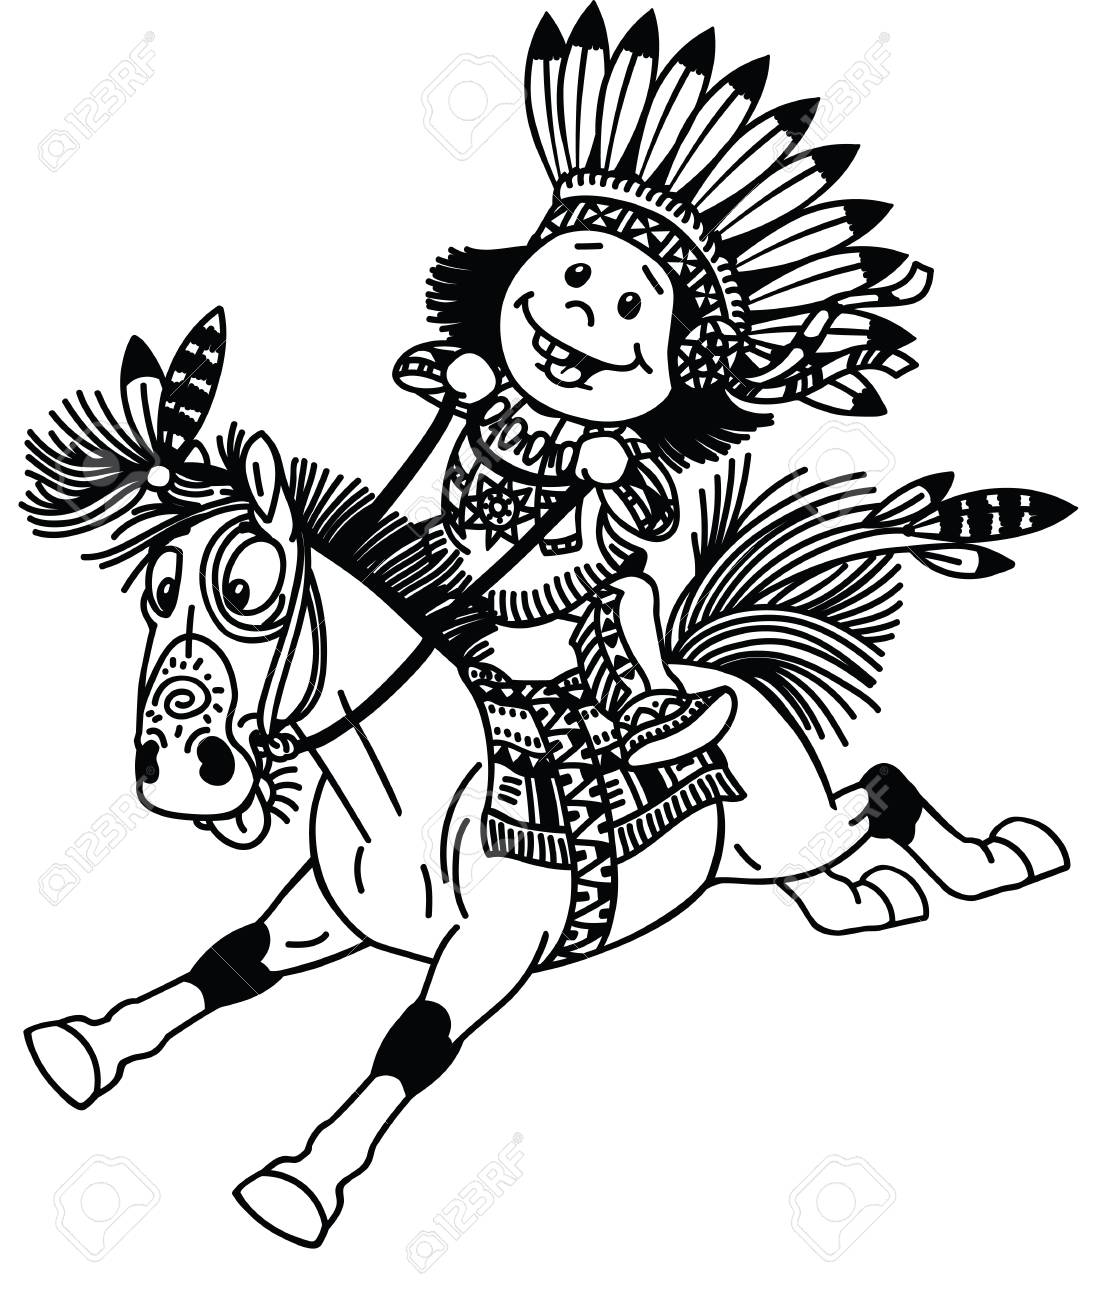 Cartoon Kid Wearing Native Indian Costume And Riding M Pony Horse Royalty Free Cliparts Vectors And Stock Illustration Image 116481016